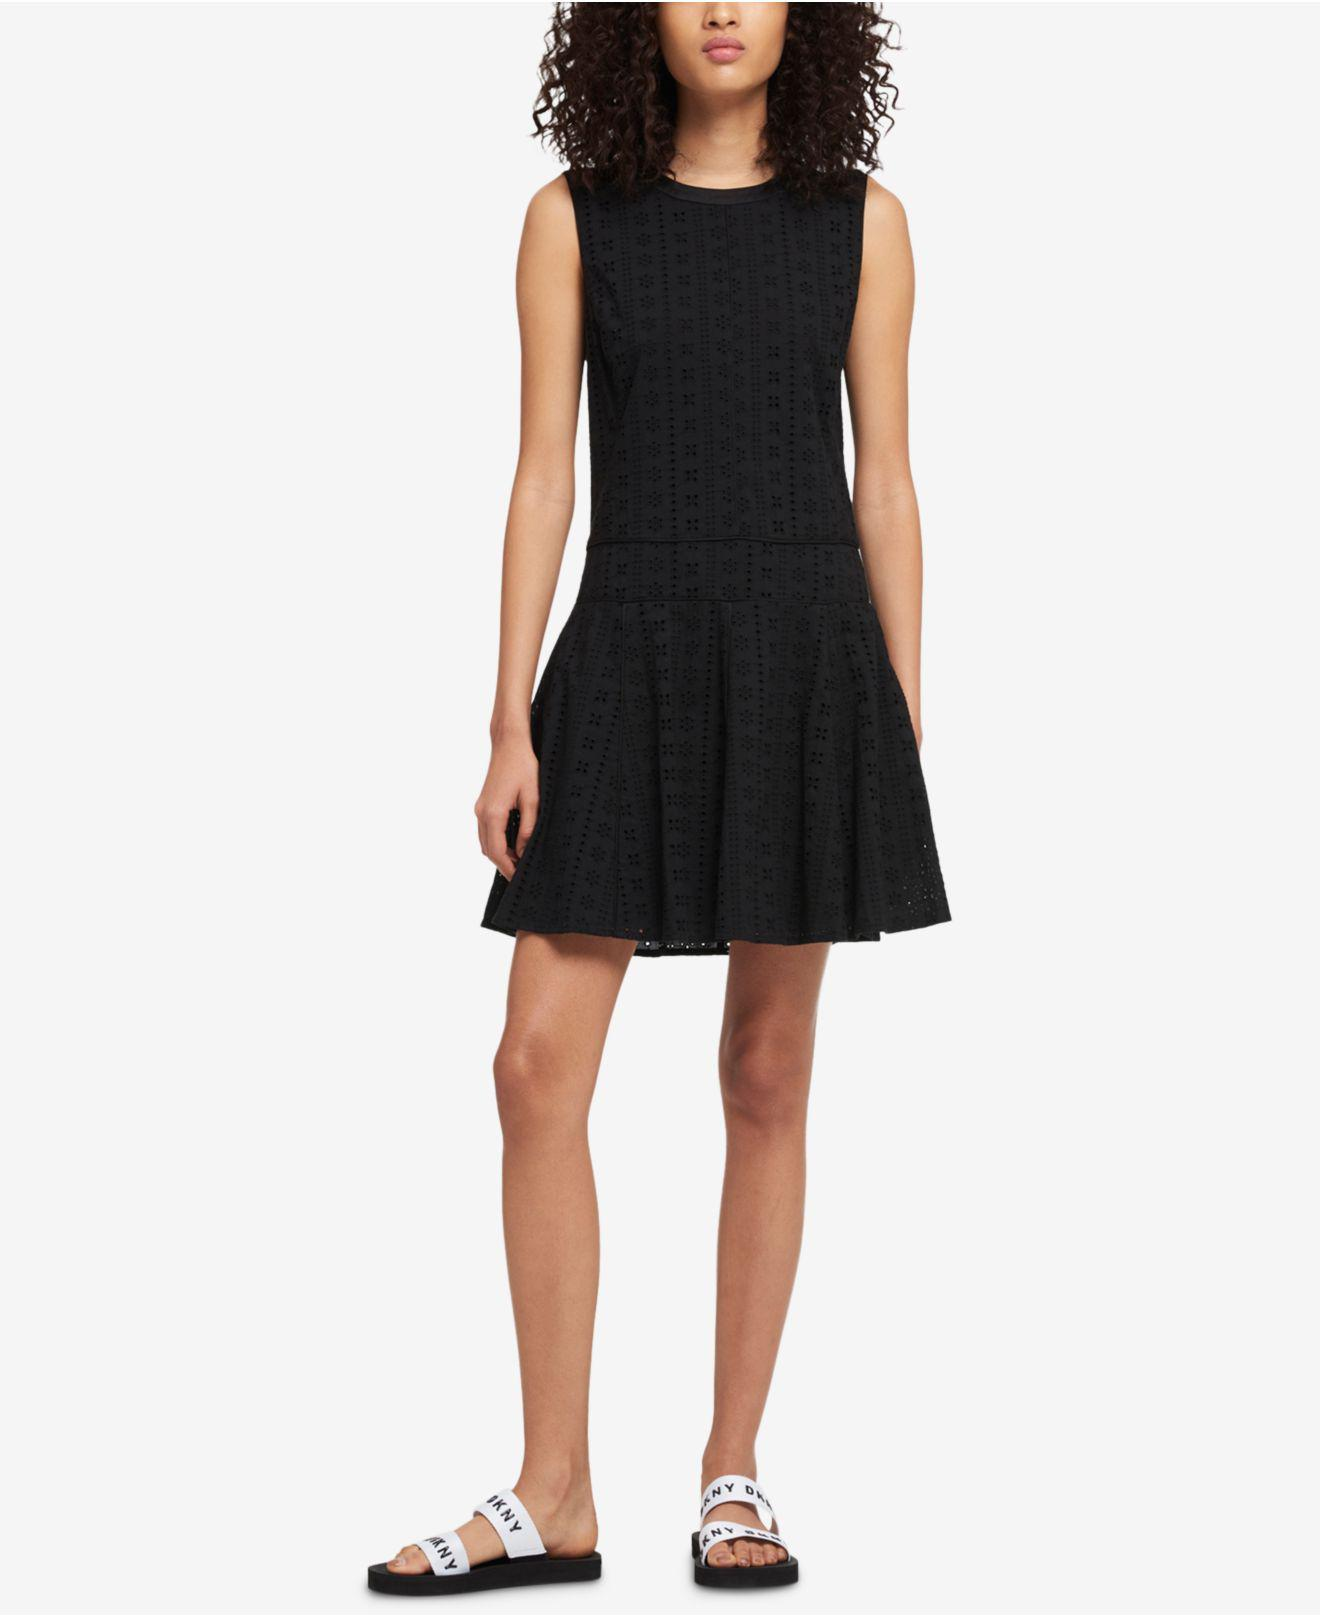 Painted Stripe Asymmetrical Sleeveless Dress DKNY Real Manchester Cheap Price 2018 Sale Online Get To Buy Cheap Sale Limited Edition or0Ab